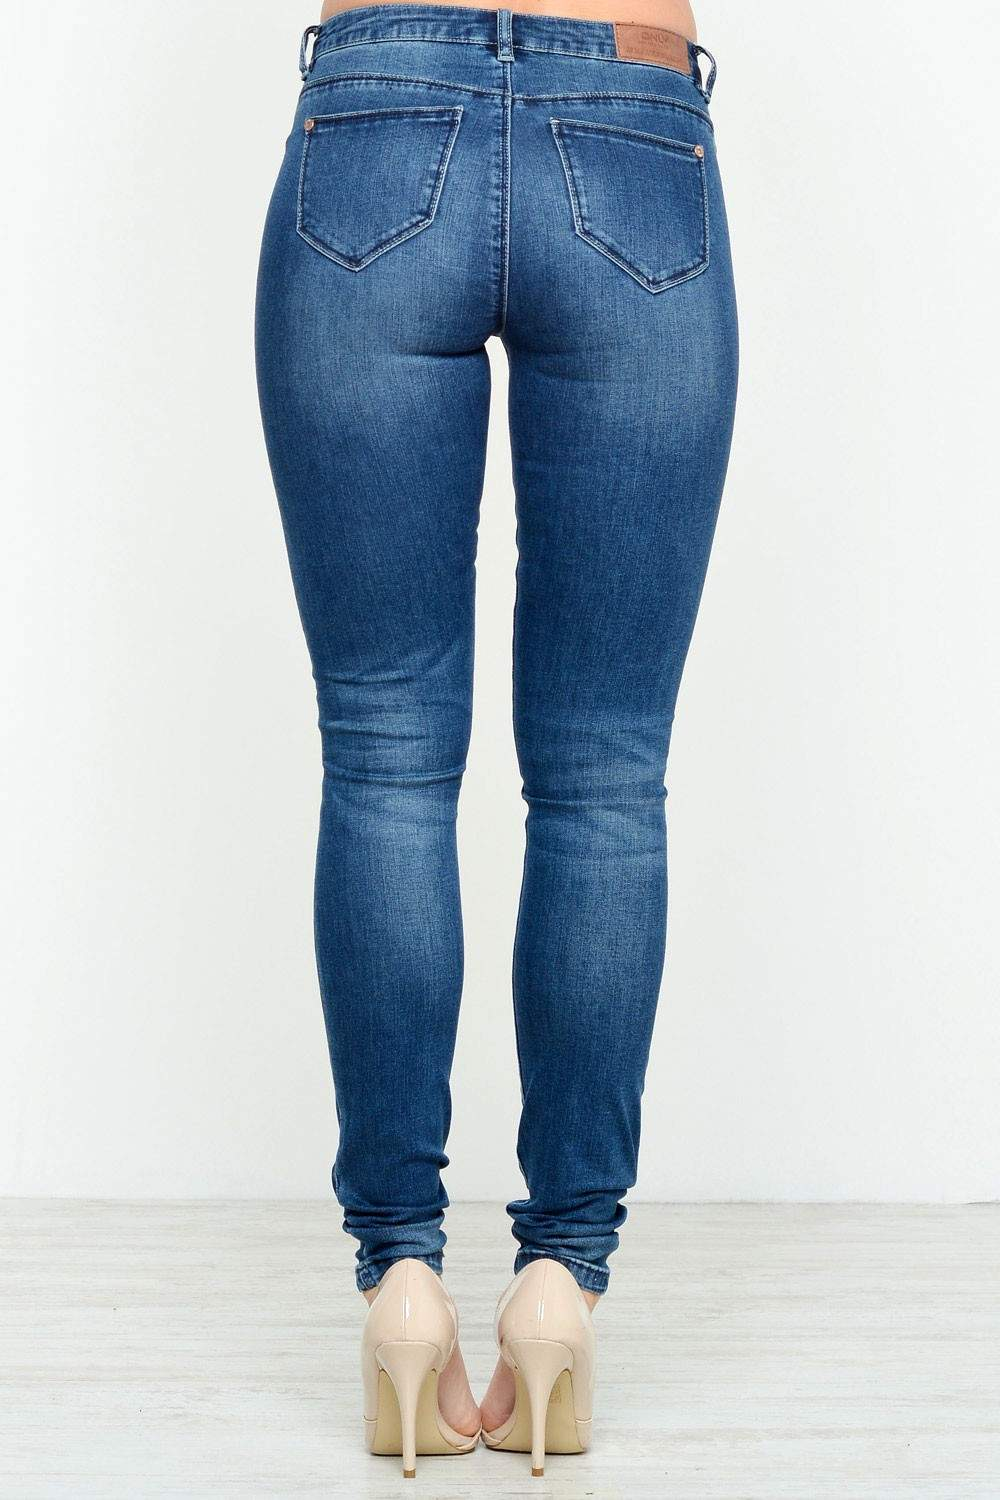 Ridley Skinny Jeans, $32, ASOS Petite This brand has special sections for petite and tall people, so I trust that these jeans are actually made for those of us on the shorter side. 4.